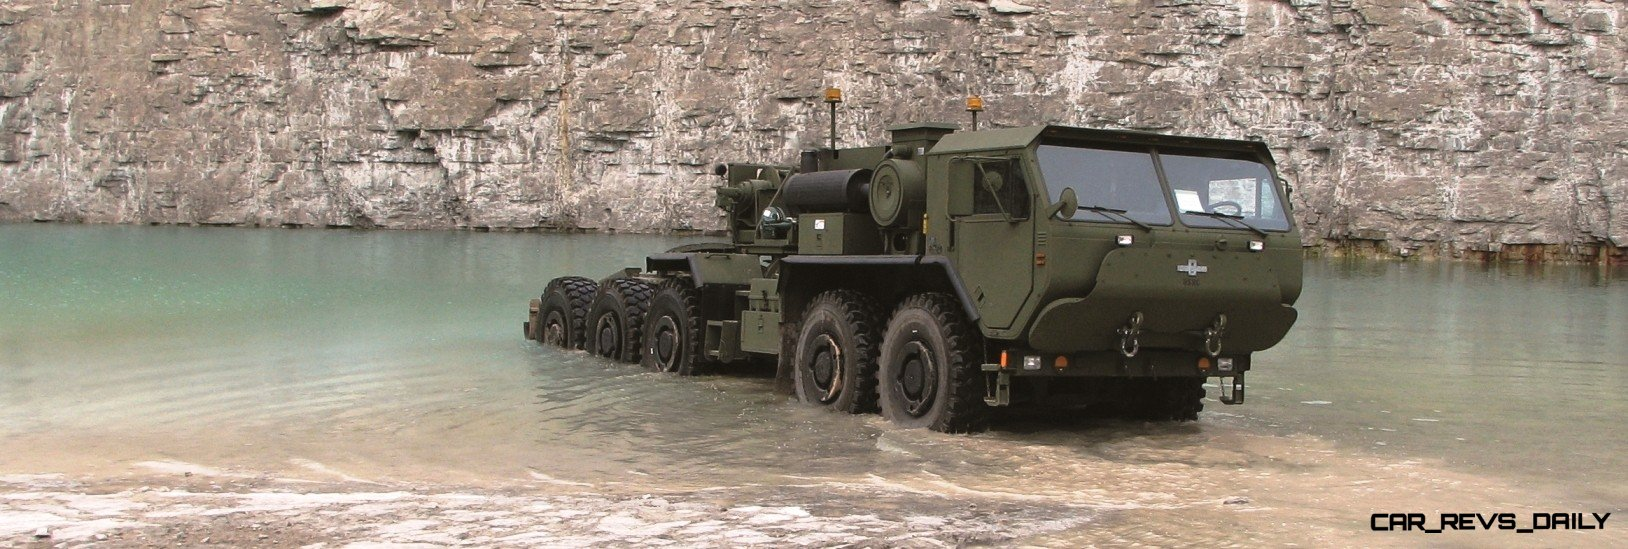 CarRevsDaily.com - Oshkosh Defense Medium and Heavy Showcase 11